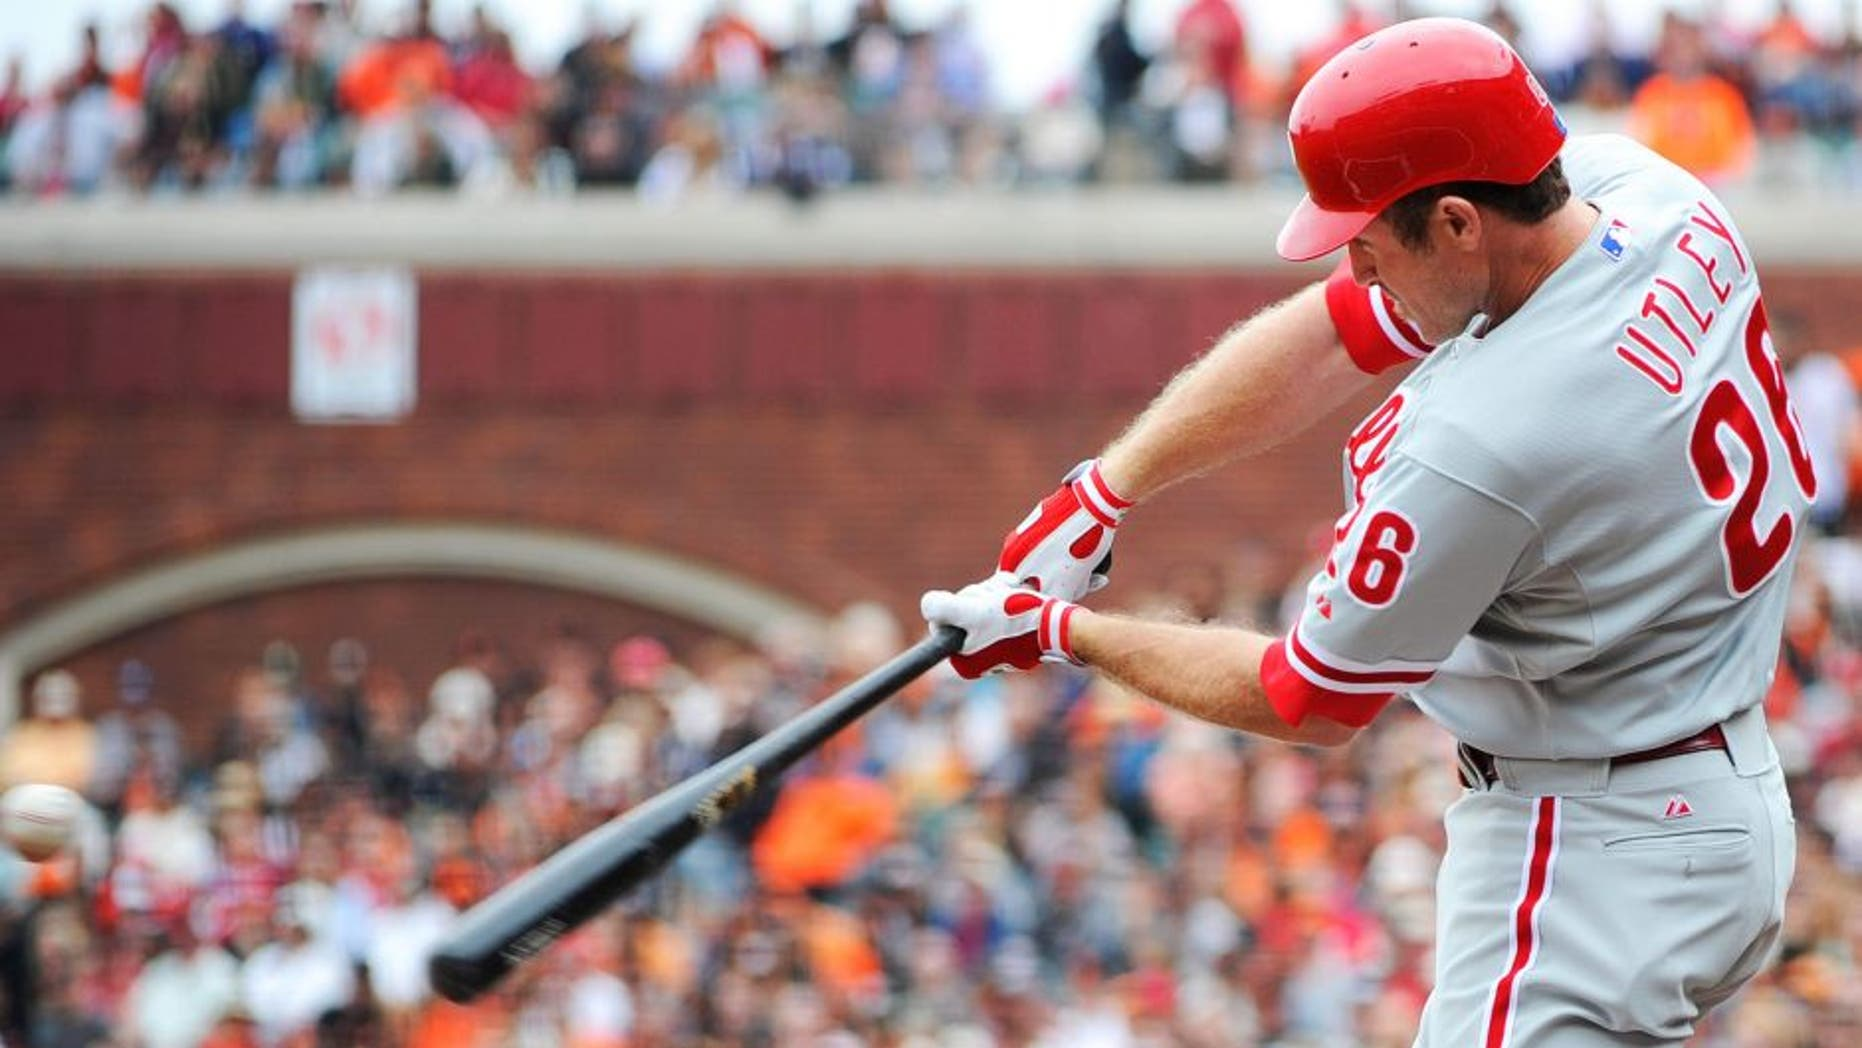 SAN FRANCISCO, CA - AUGUST 7: Chase Utley #26 of the Philadelphia Phillies bats against the San Francisco Giants during an MLB baseball game at AT&T Park August 7, 2011 in San Francisco, California. The Giants won the game 3-1. (Photo by Thearon W. Henderson/Getty Images)